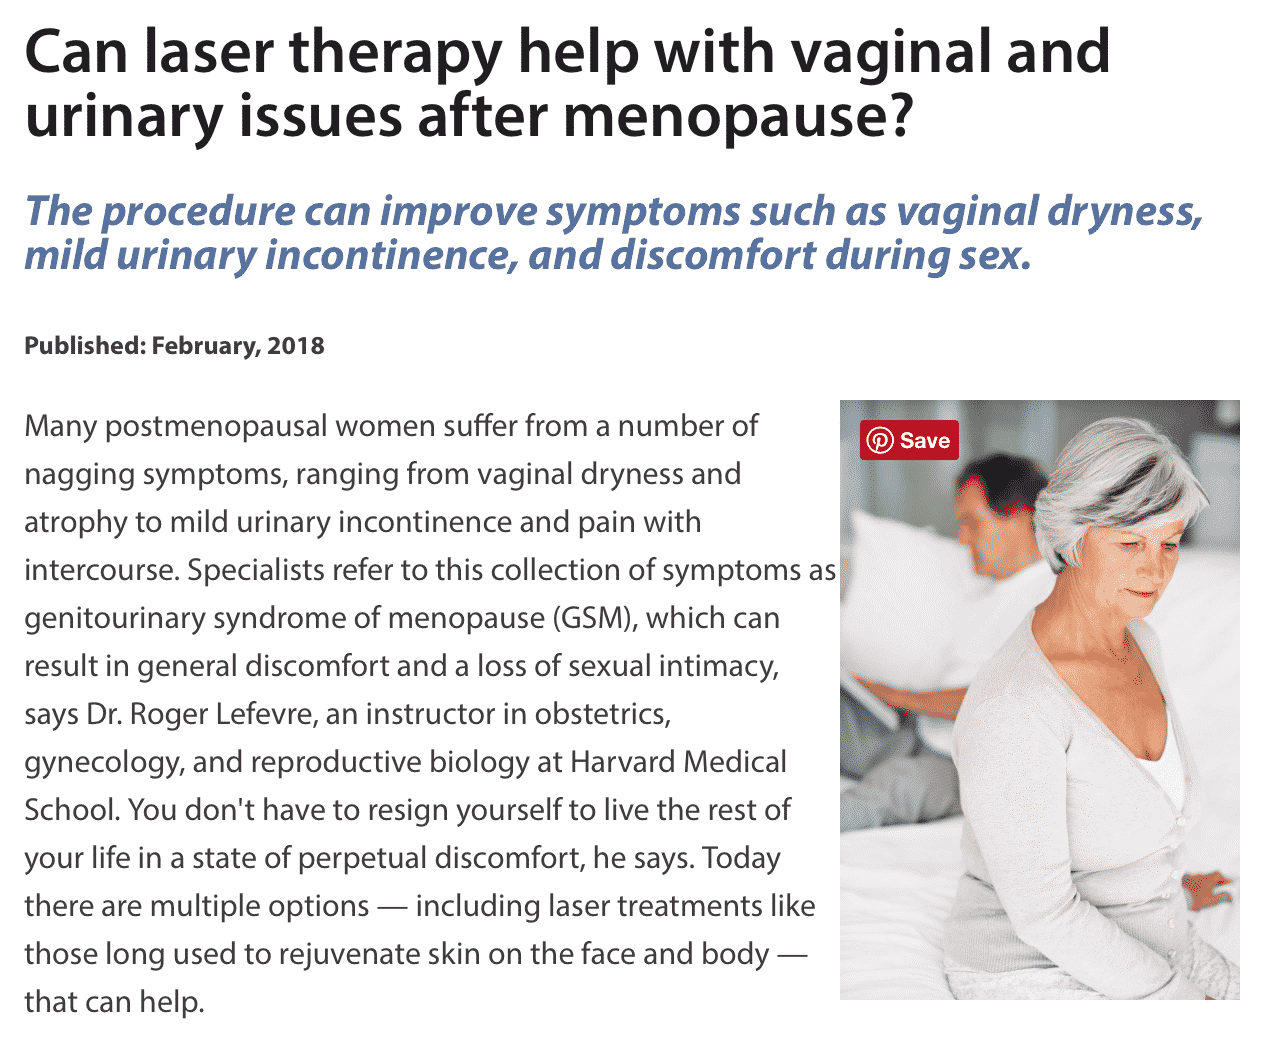 Can laser therapy help with vaginal and urinary issues after menopause?